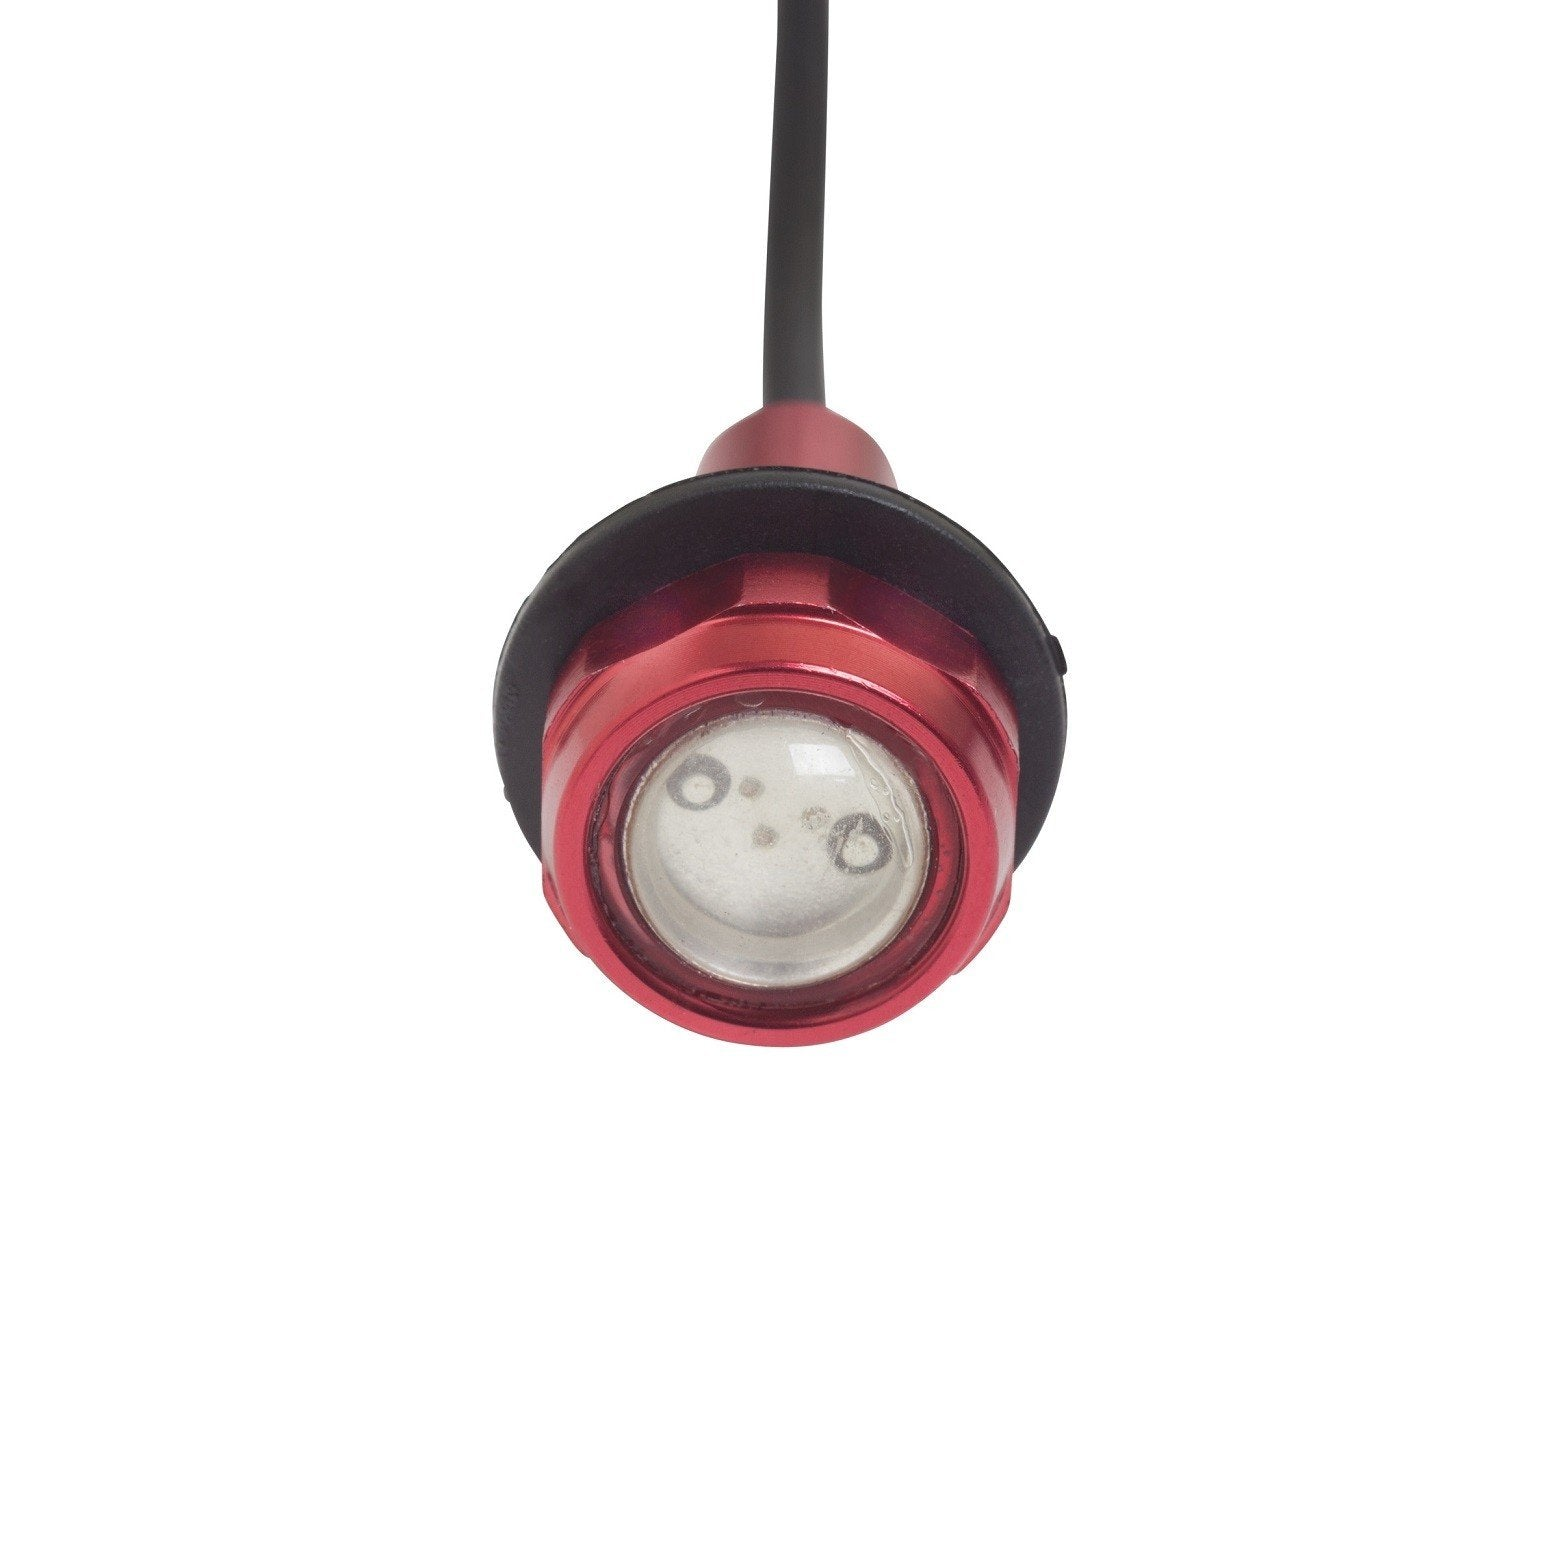 2-Piece Super Bright LED Button Light Kit - Hoodoo Sports